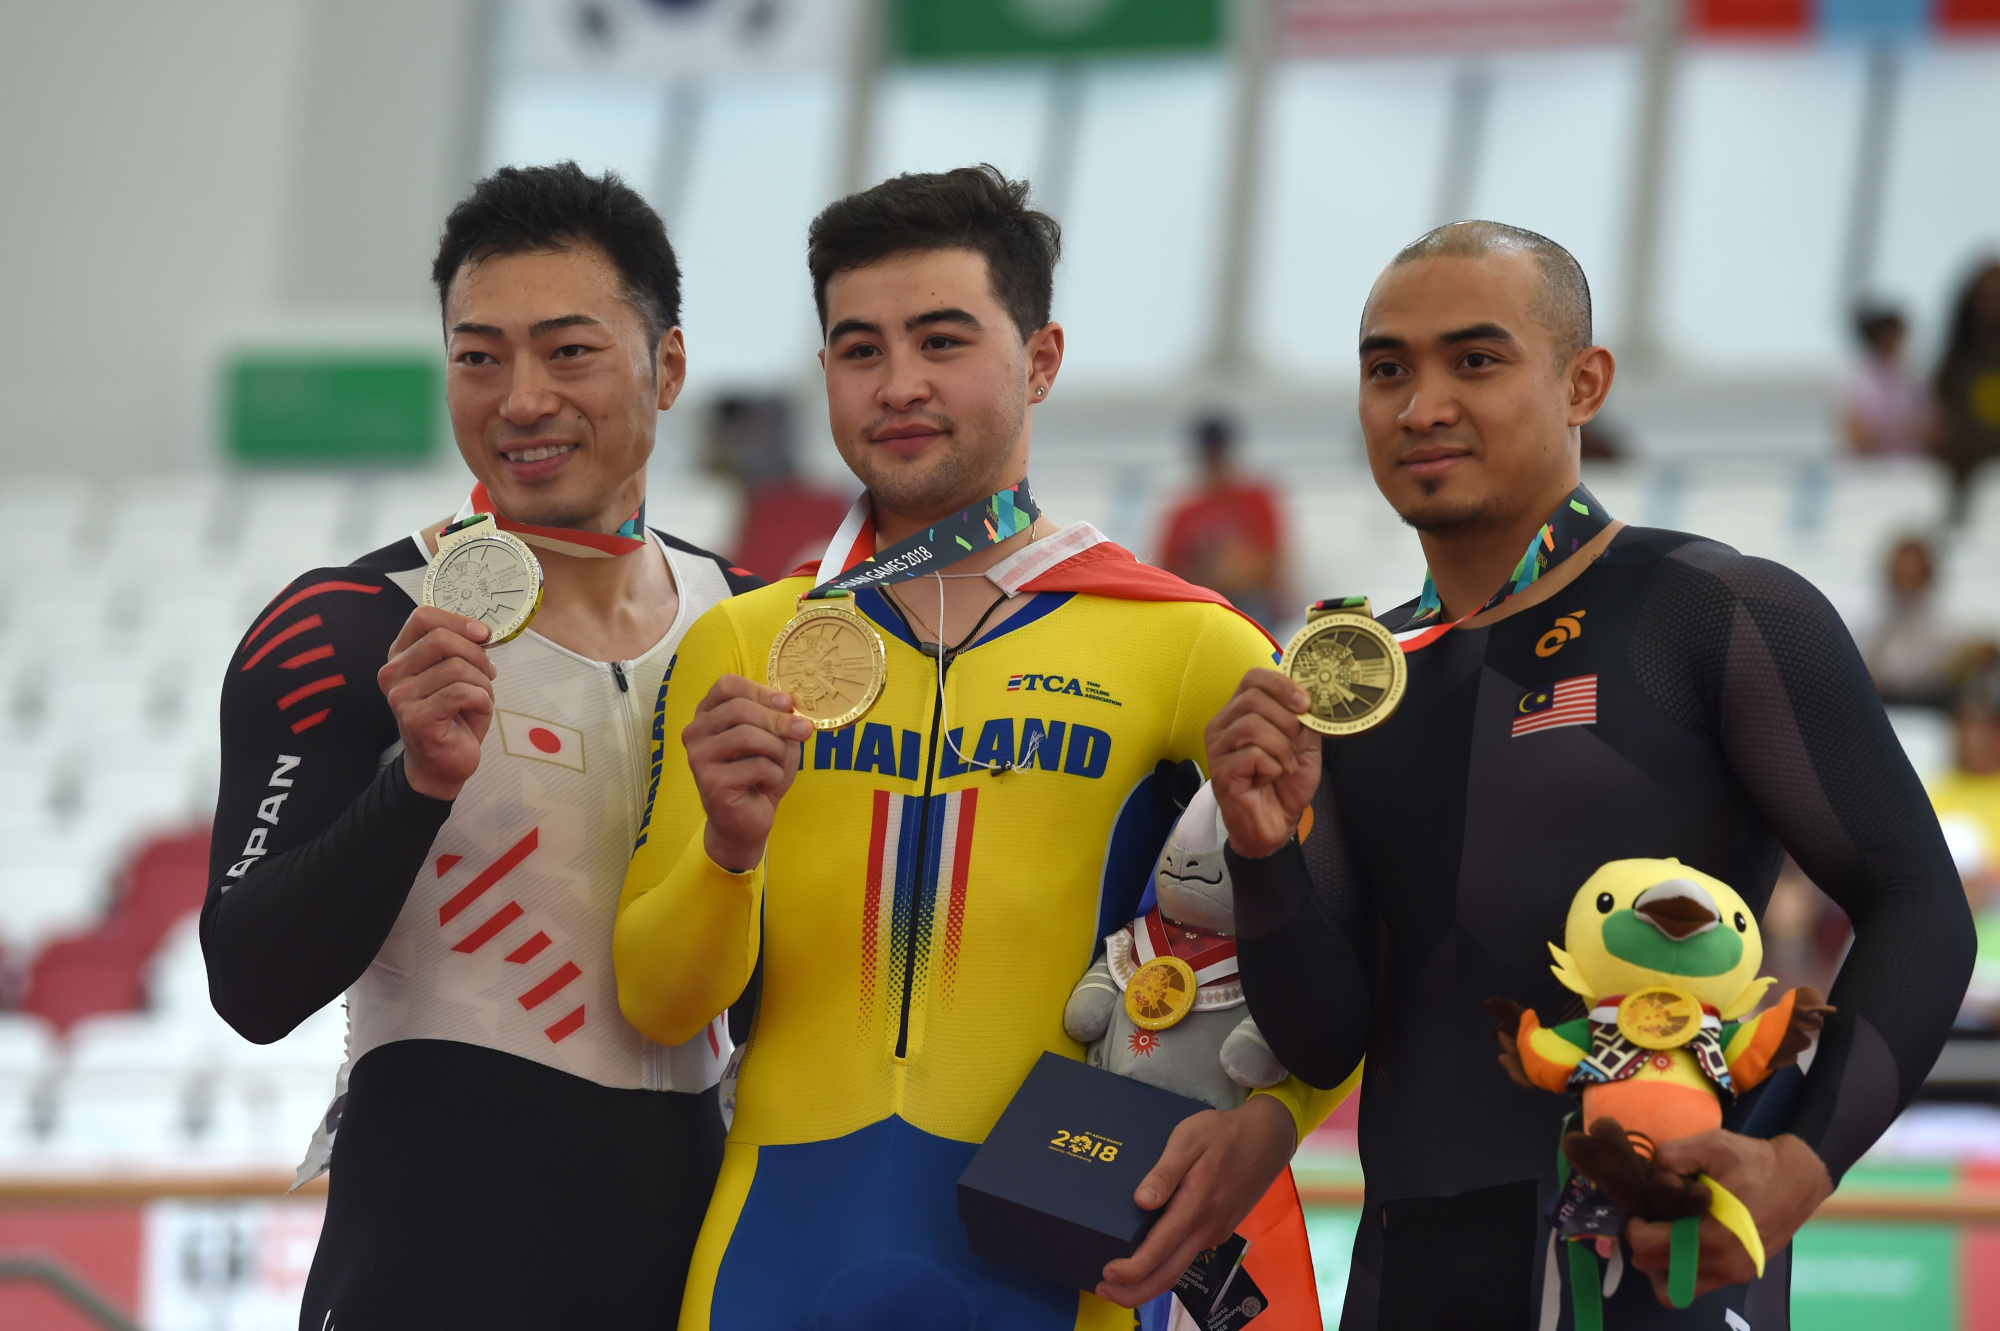 Silver medalist Yudai Nitta (left) poses with gold medalist Jai Angsuthasawit (center) and Mohd Azizulhasni Awang, the bronze medalist, after the men's keirin competition during the Asian Games on Friday in Jakarta. | AFP-JIJI